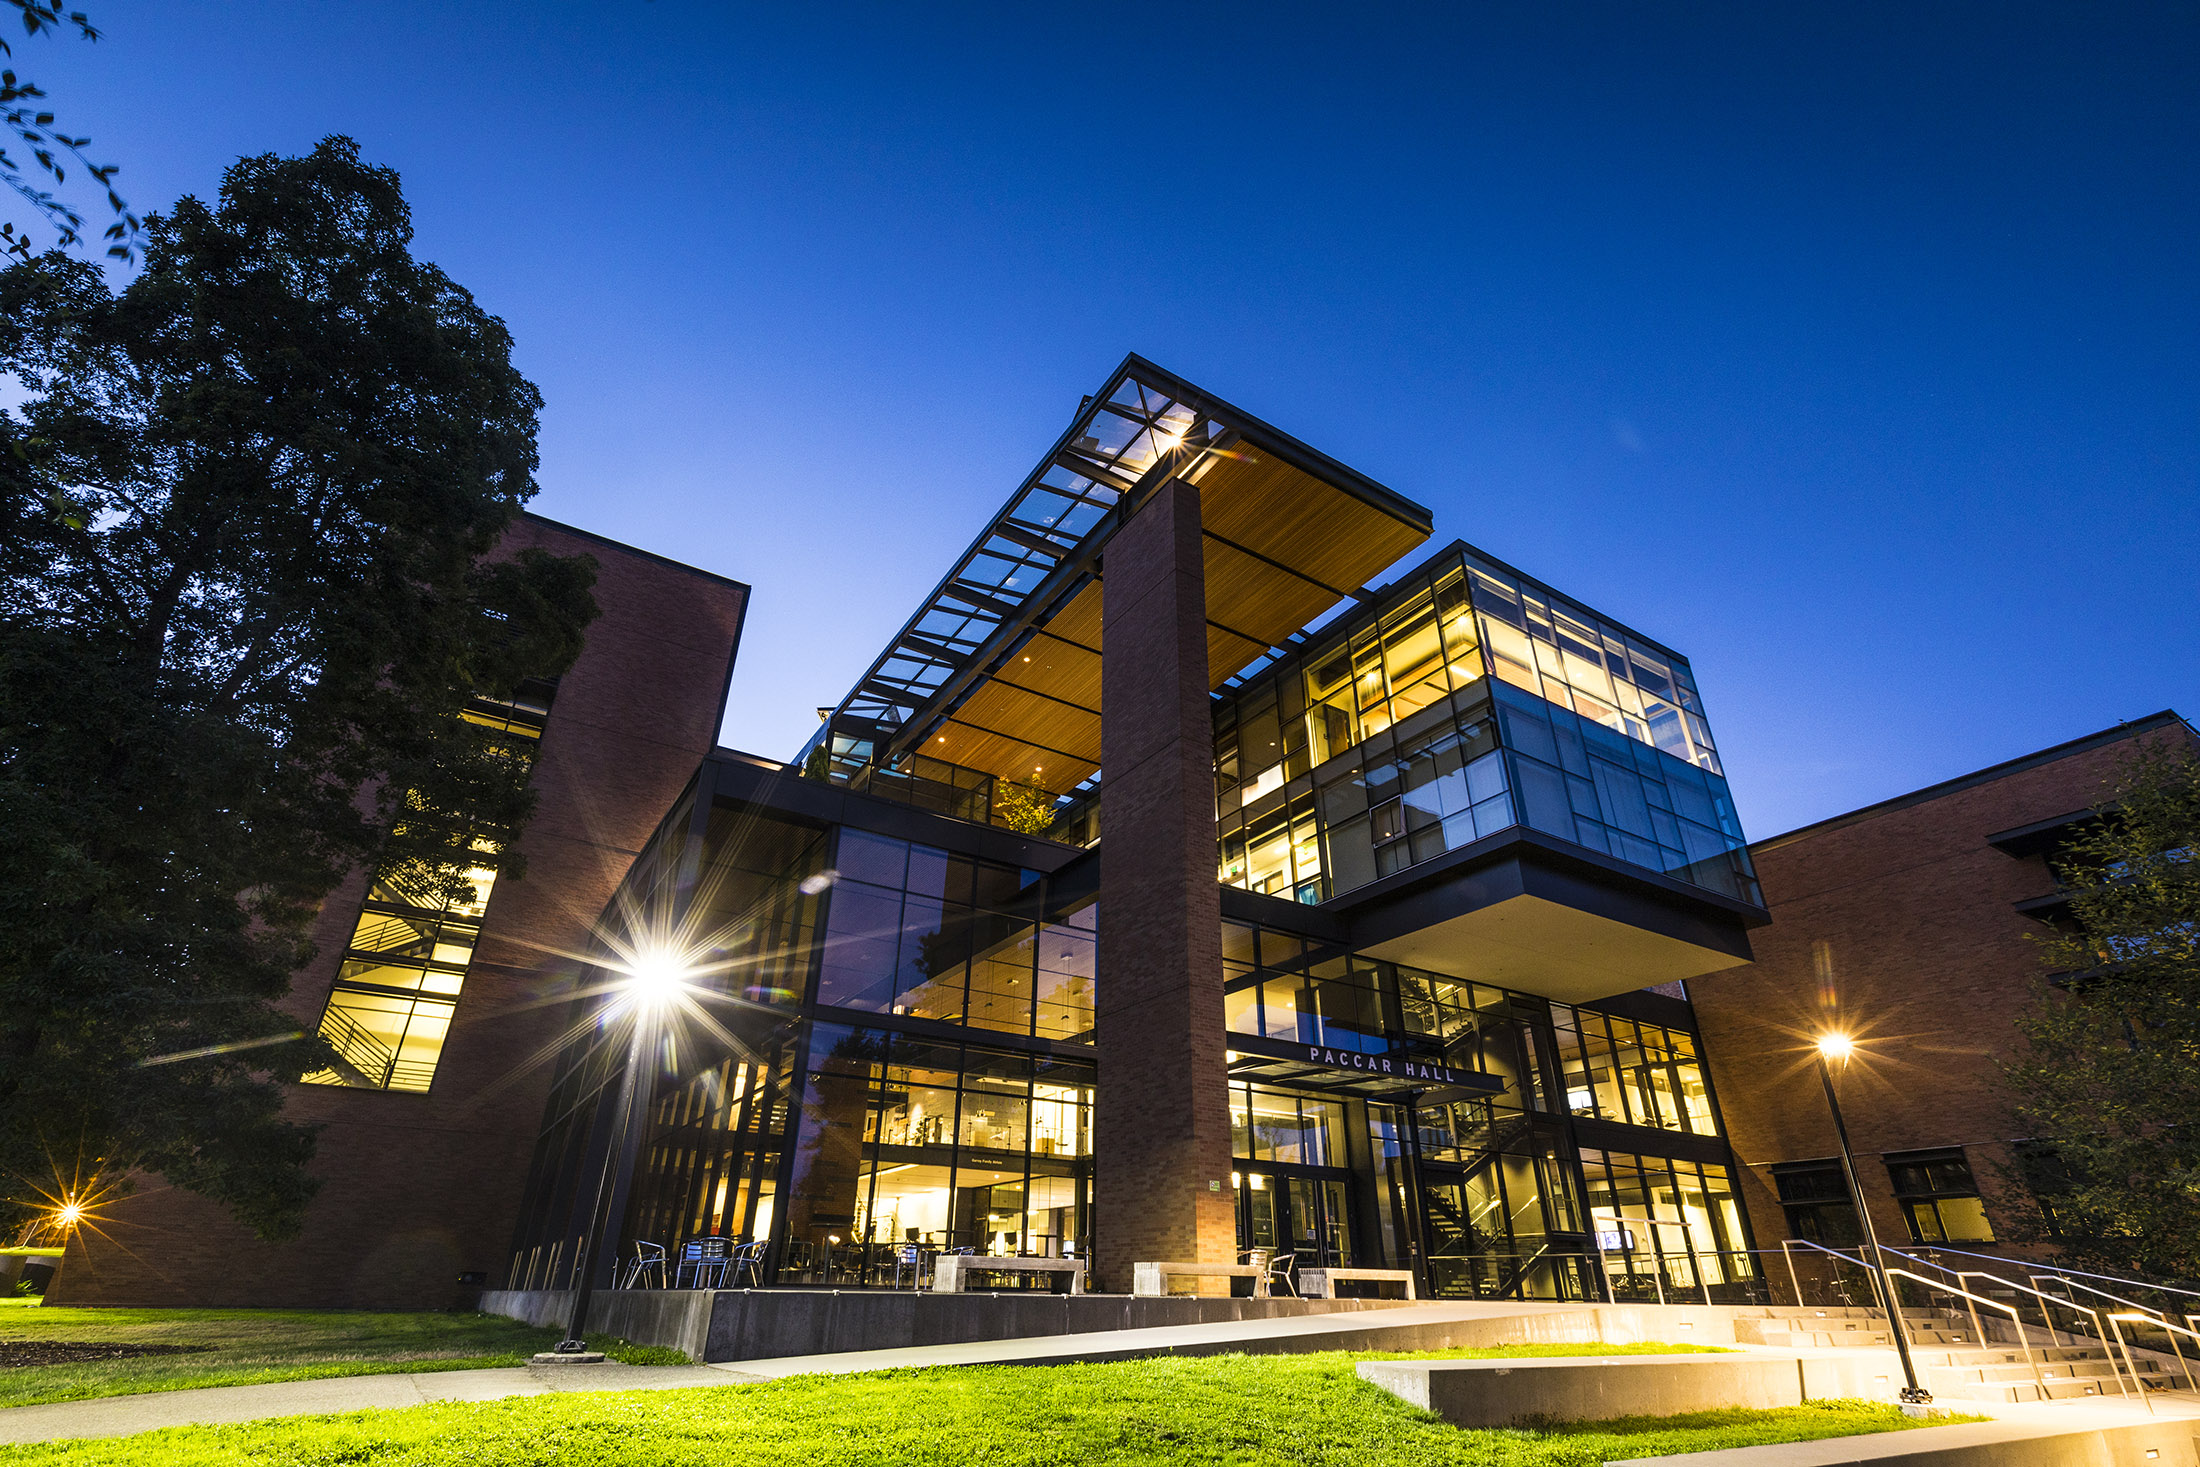 PACCAR HALL, Housing the Foster School of Business, PACCAR Hall embodies the school's focus on leadership development, strategic thinking and collaboration.